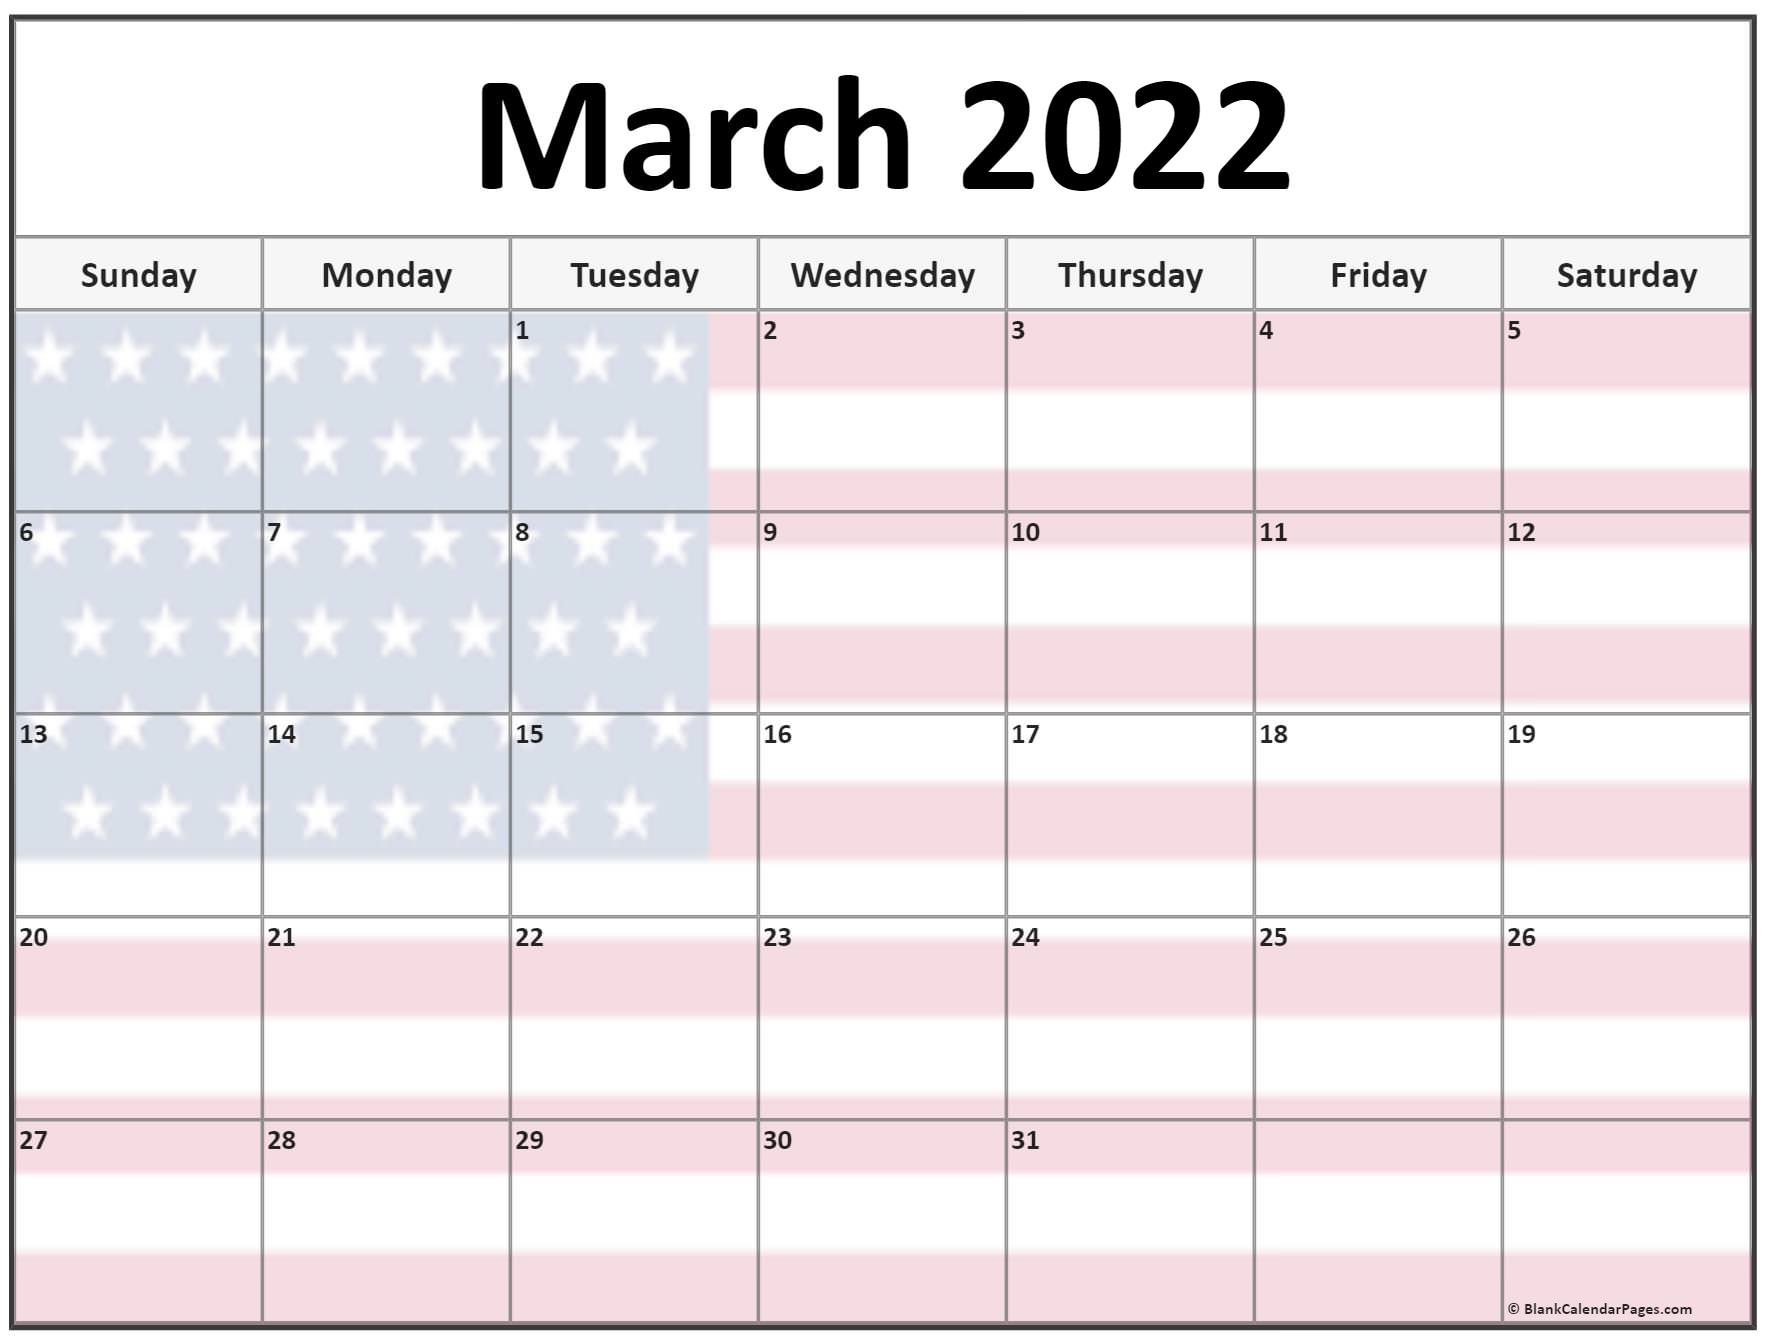 Collection of March 2022 photo calendars with image filters.